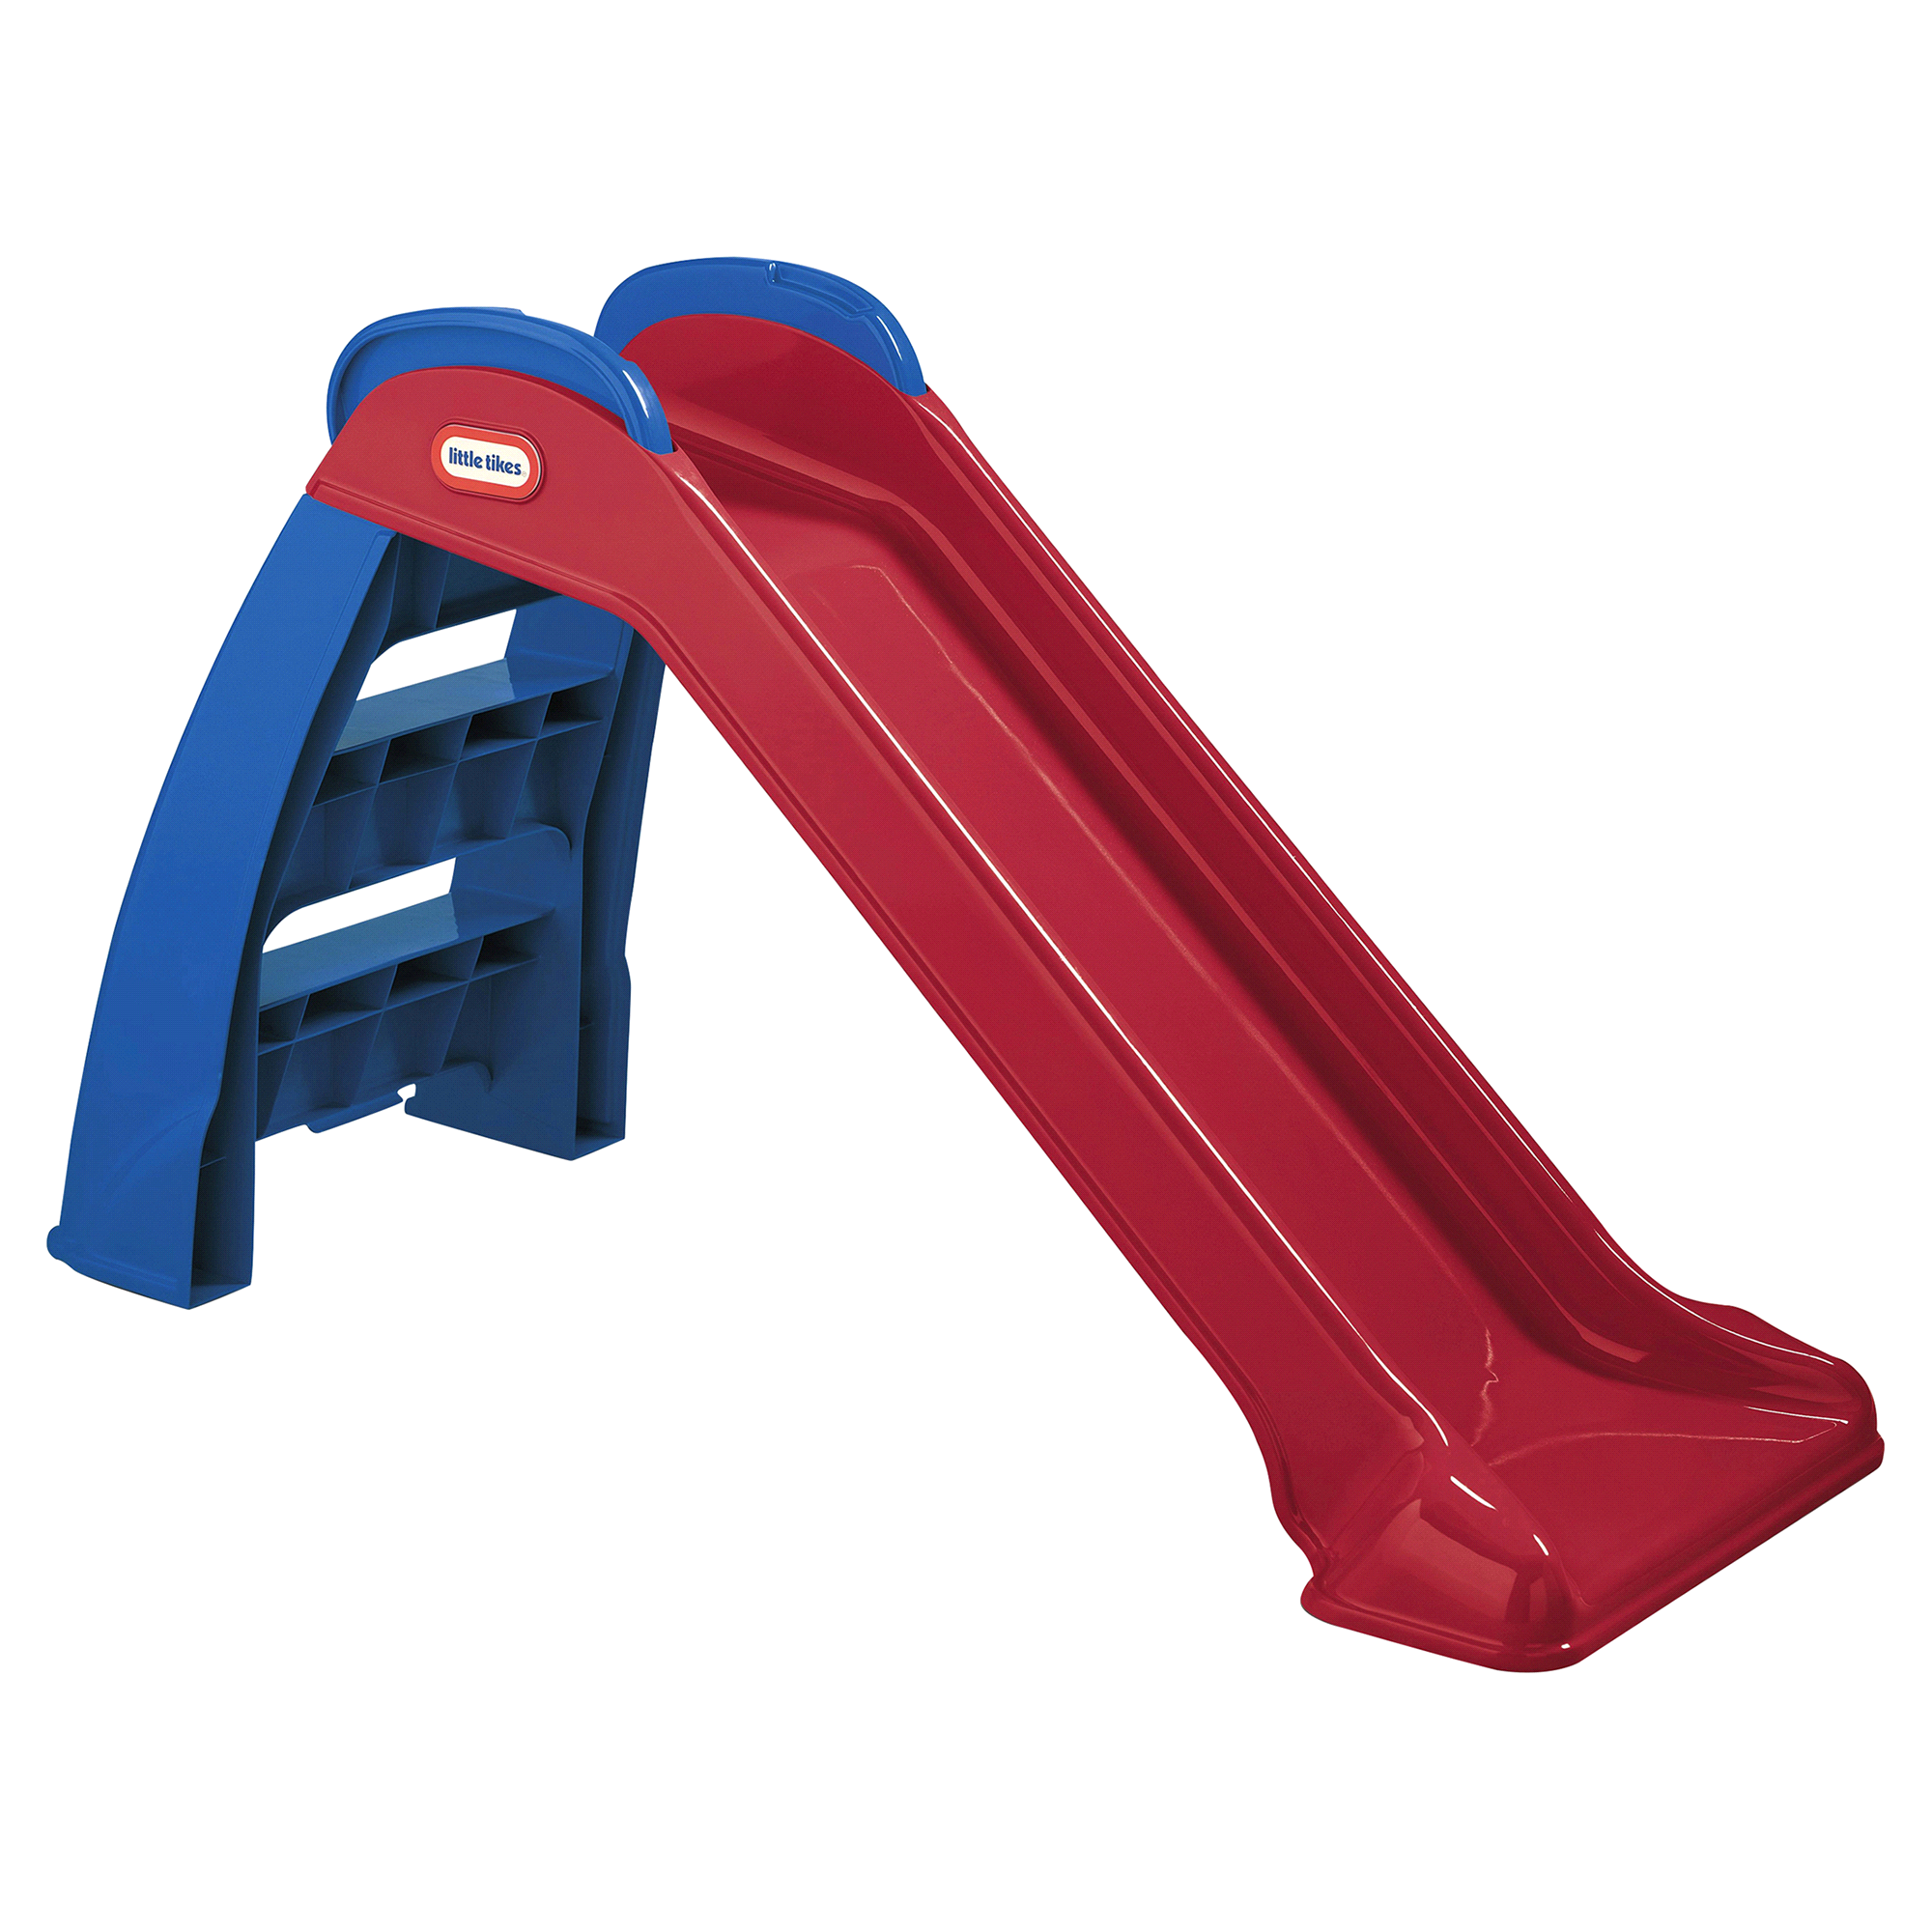 Little Tikes First Slide | Meijer.com